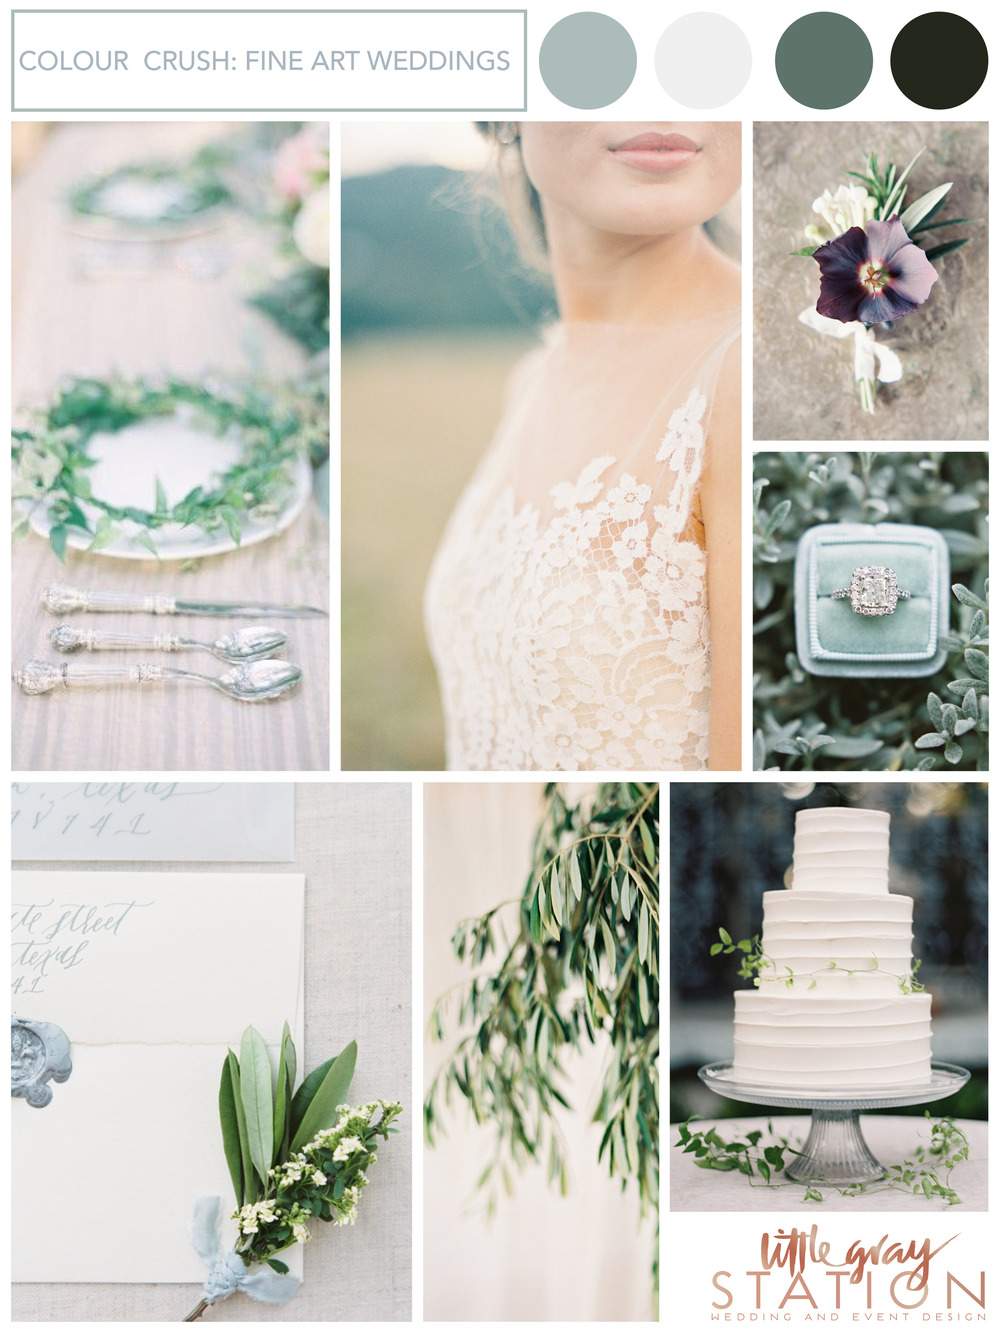 wedding theme fine art weddings styled by little gray station gold coast stylists